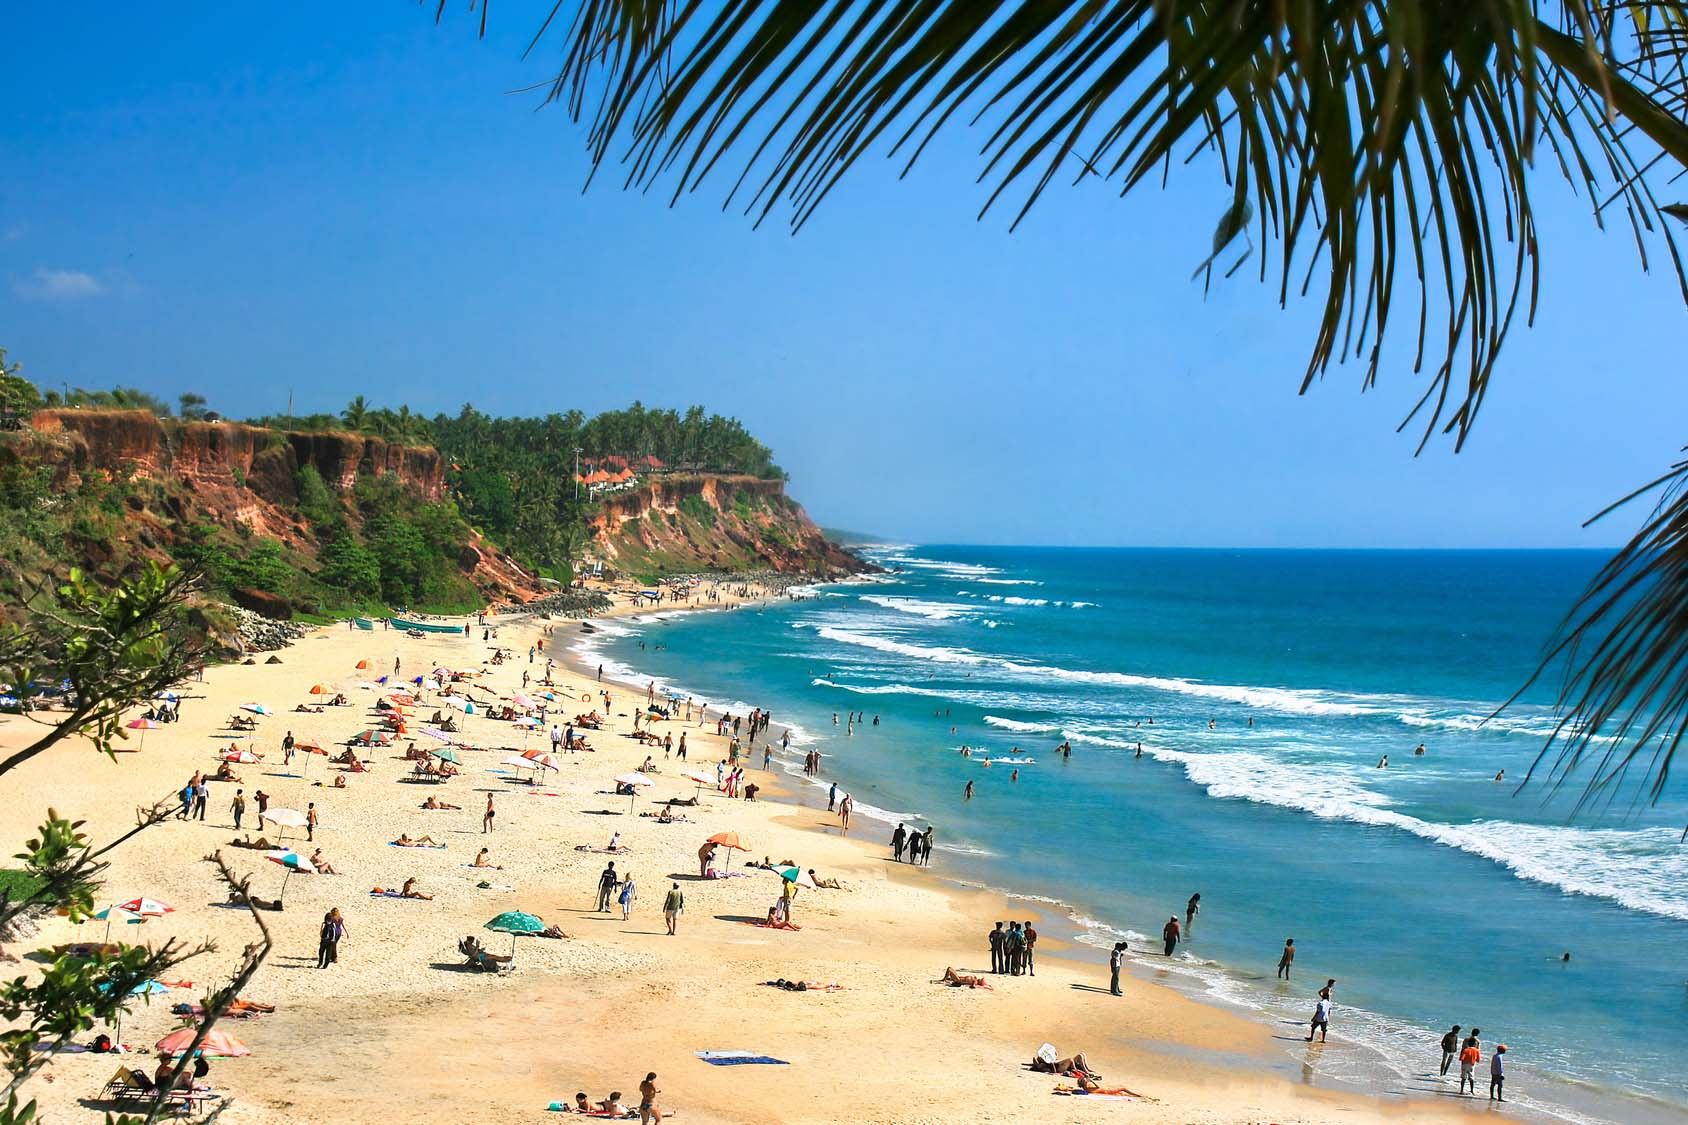 Main beach in Varkala,  Kerala, India